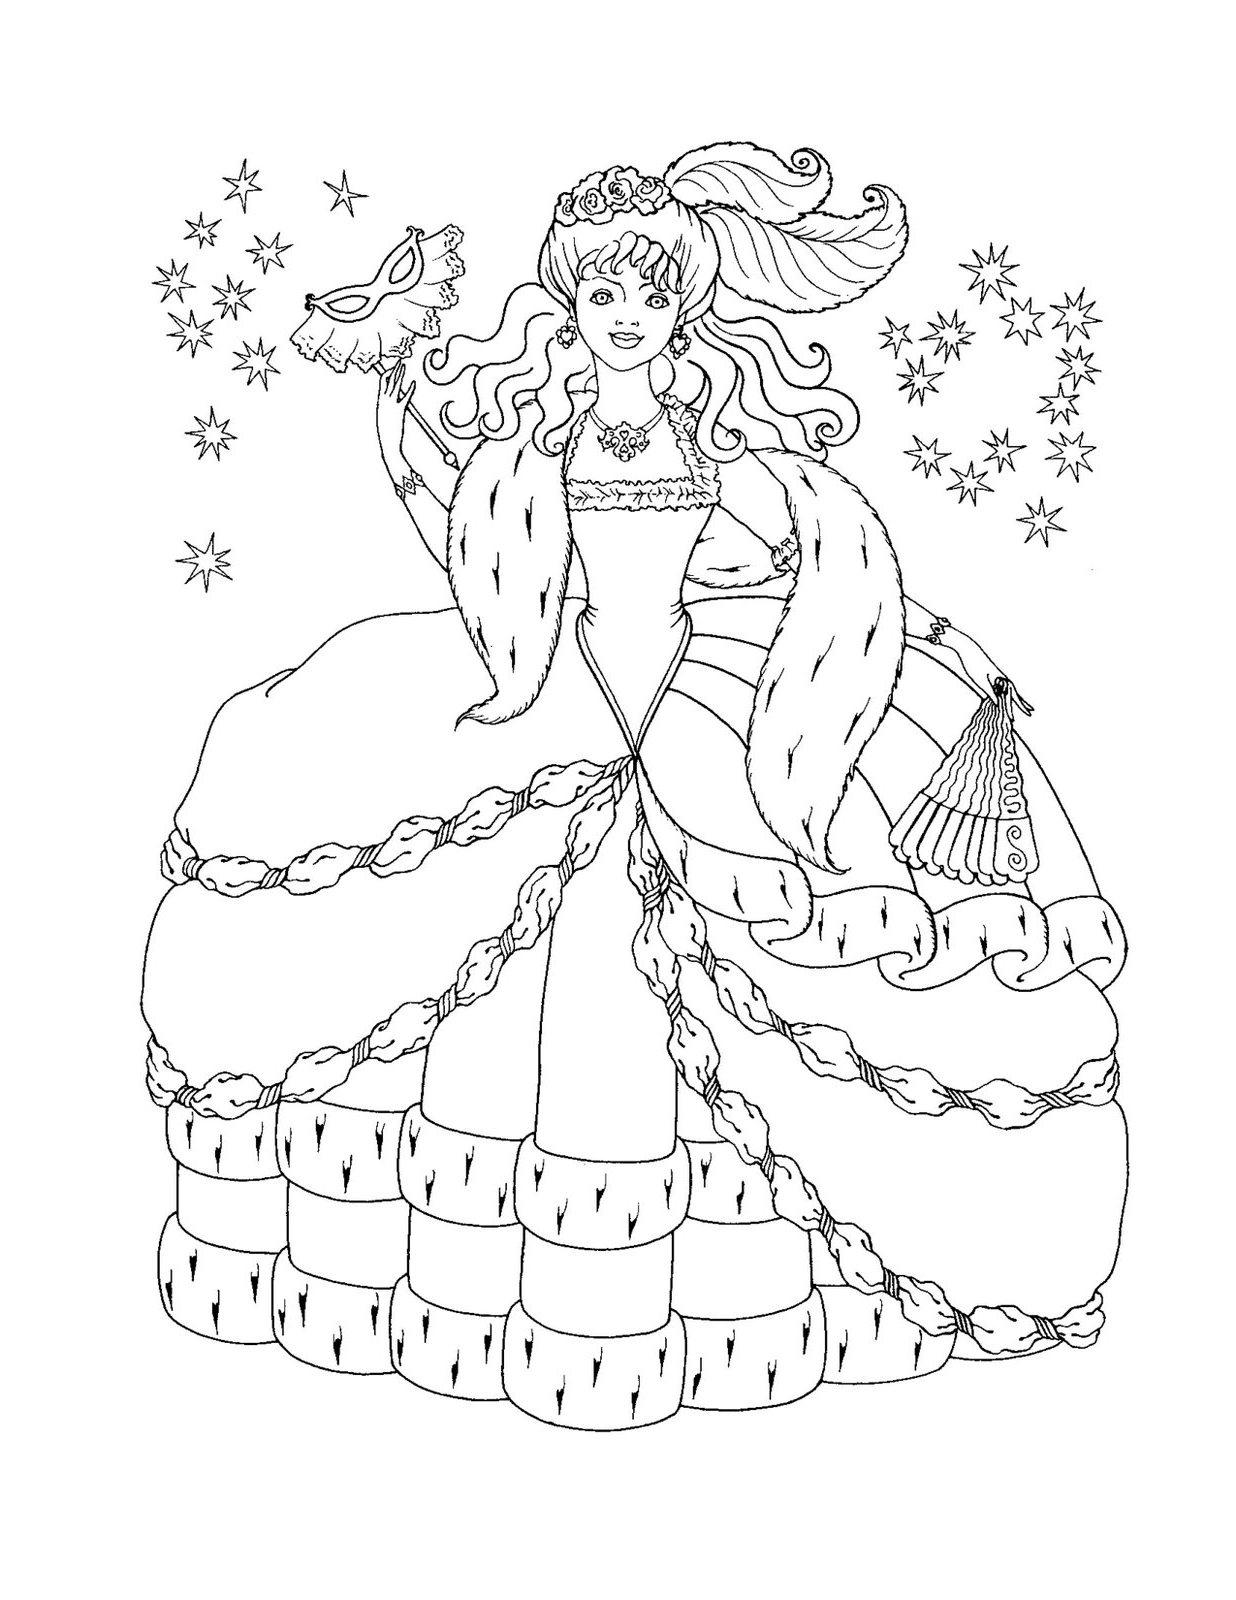 disney princess printables coloring pages - Free Printables For Toddlers